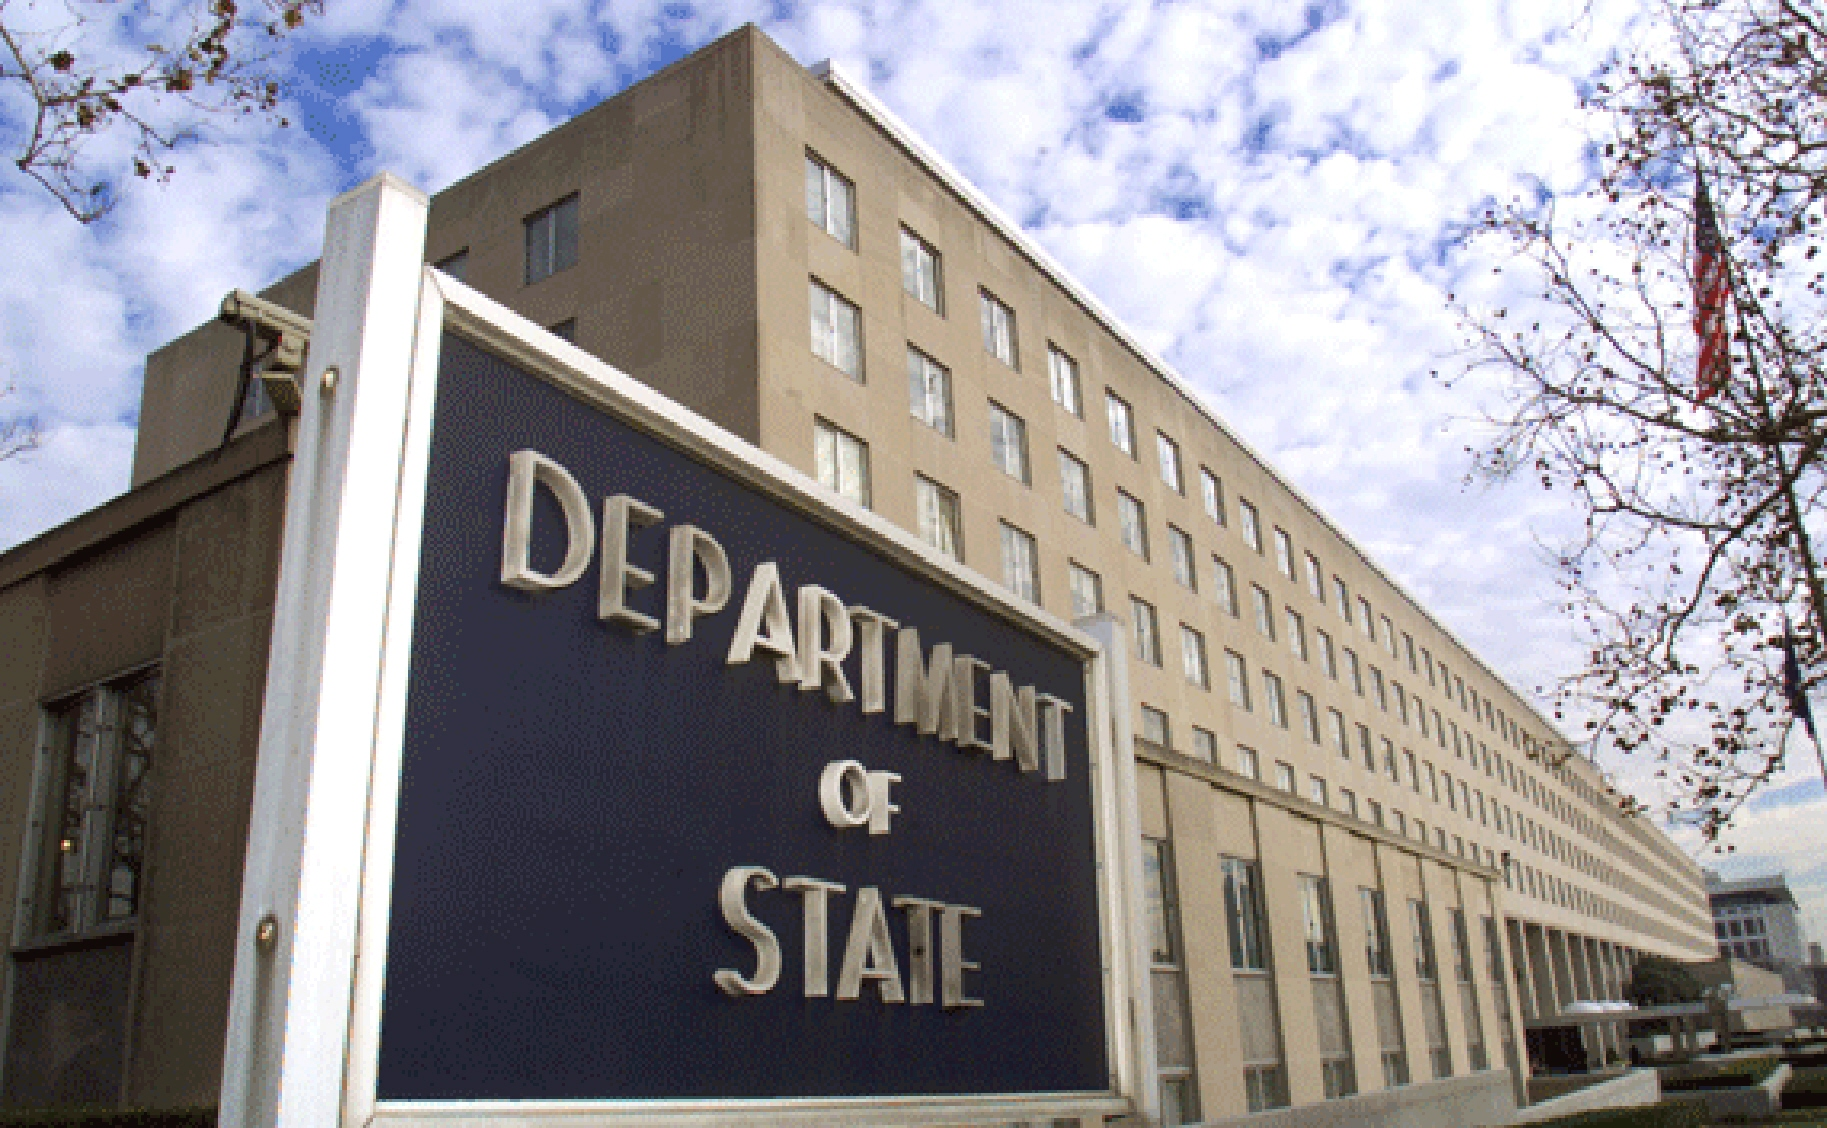 The U.S. Department of State hails the Greek-fYROMacedonian name dispute deal